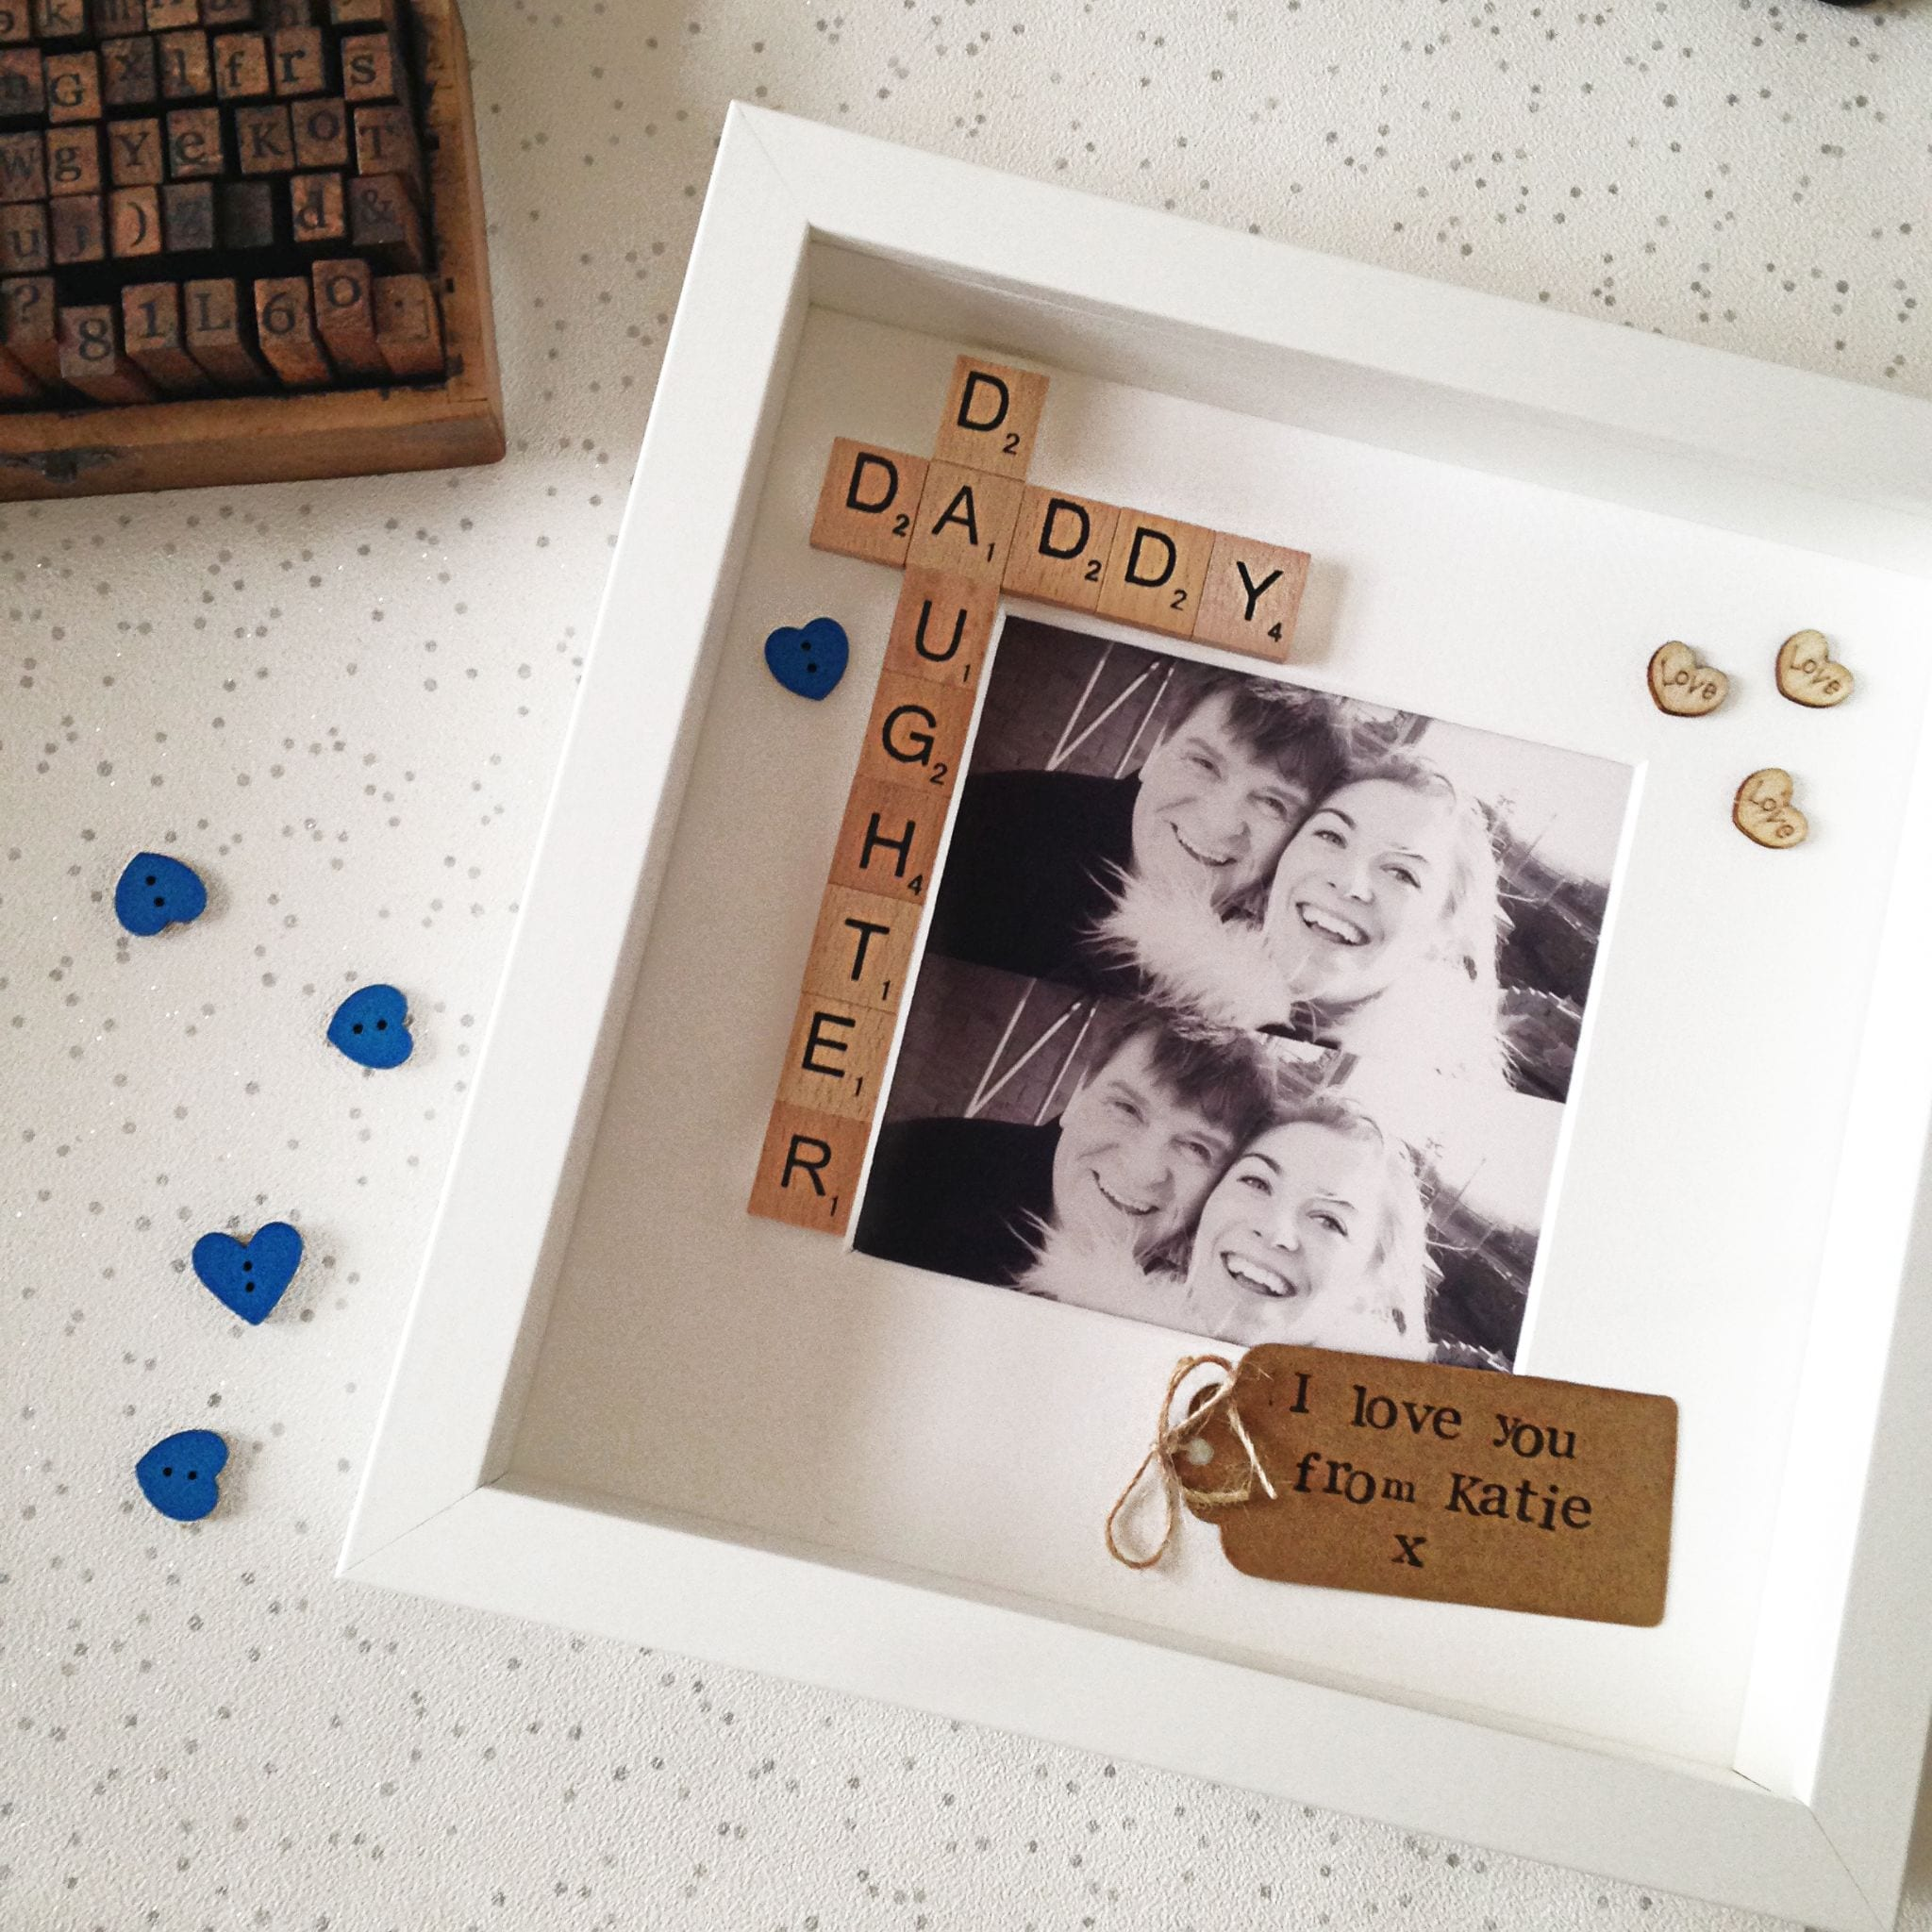 Daddy And Daughter Scrabble Frame Love Unique Personal